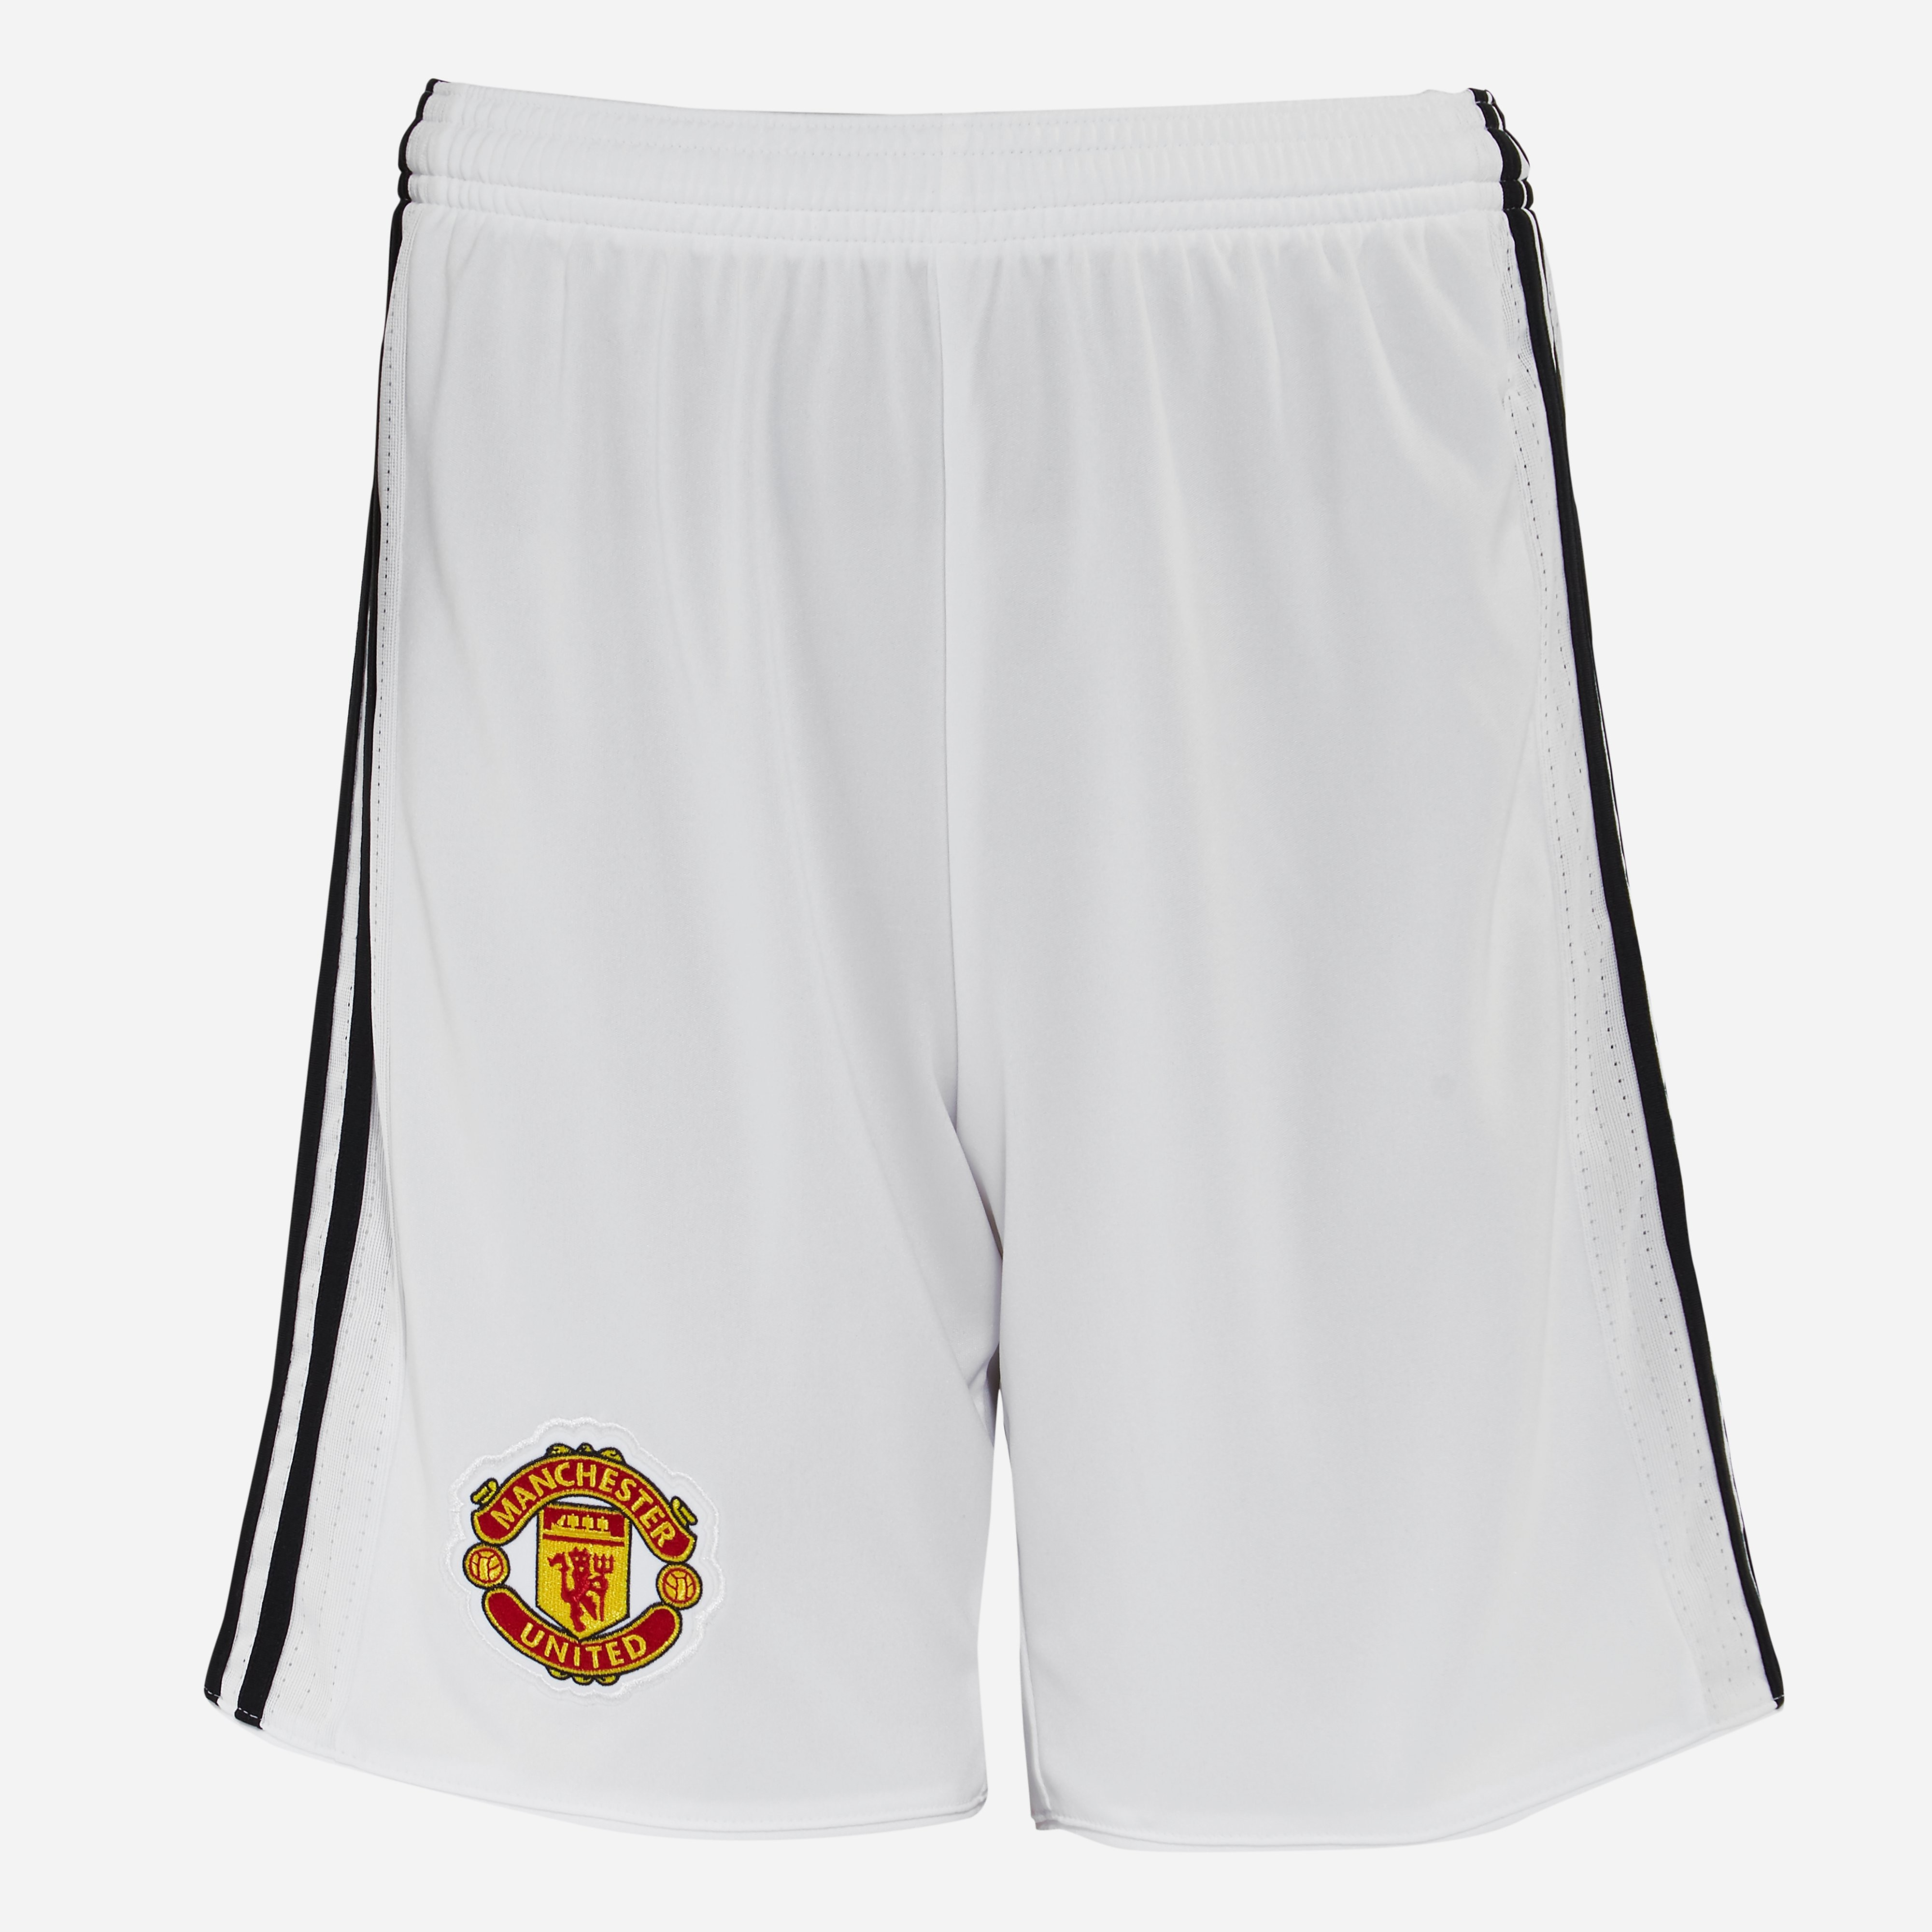 ADIDAS MANCHESTER UNITED FC THUISSHORT WIT KINDEREN